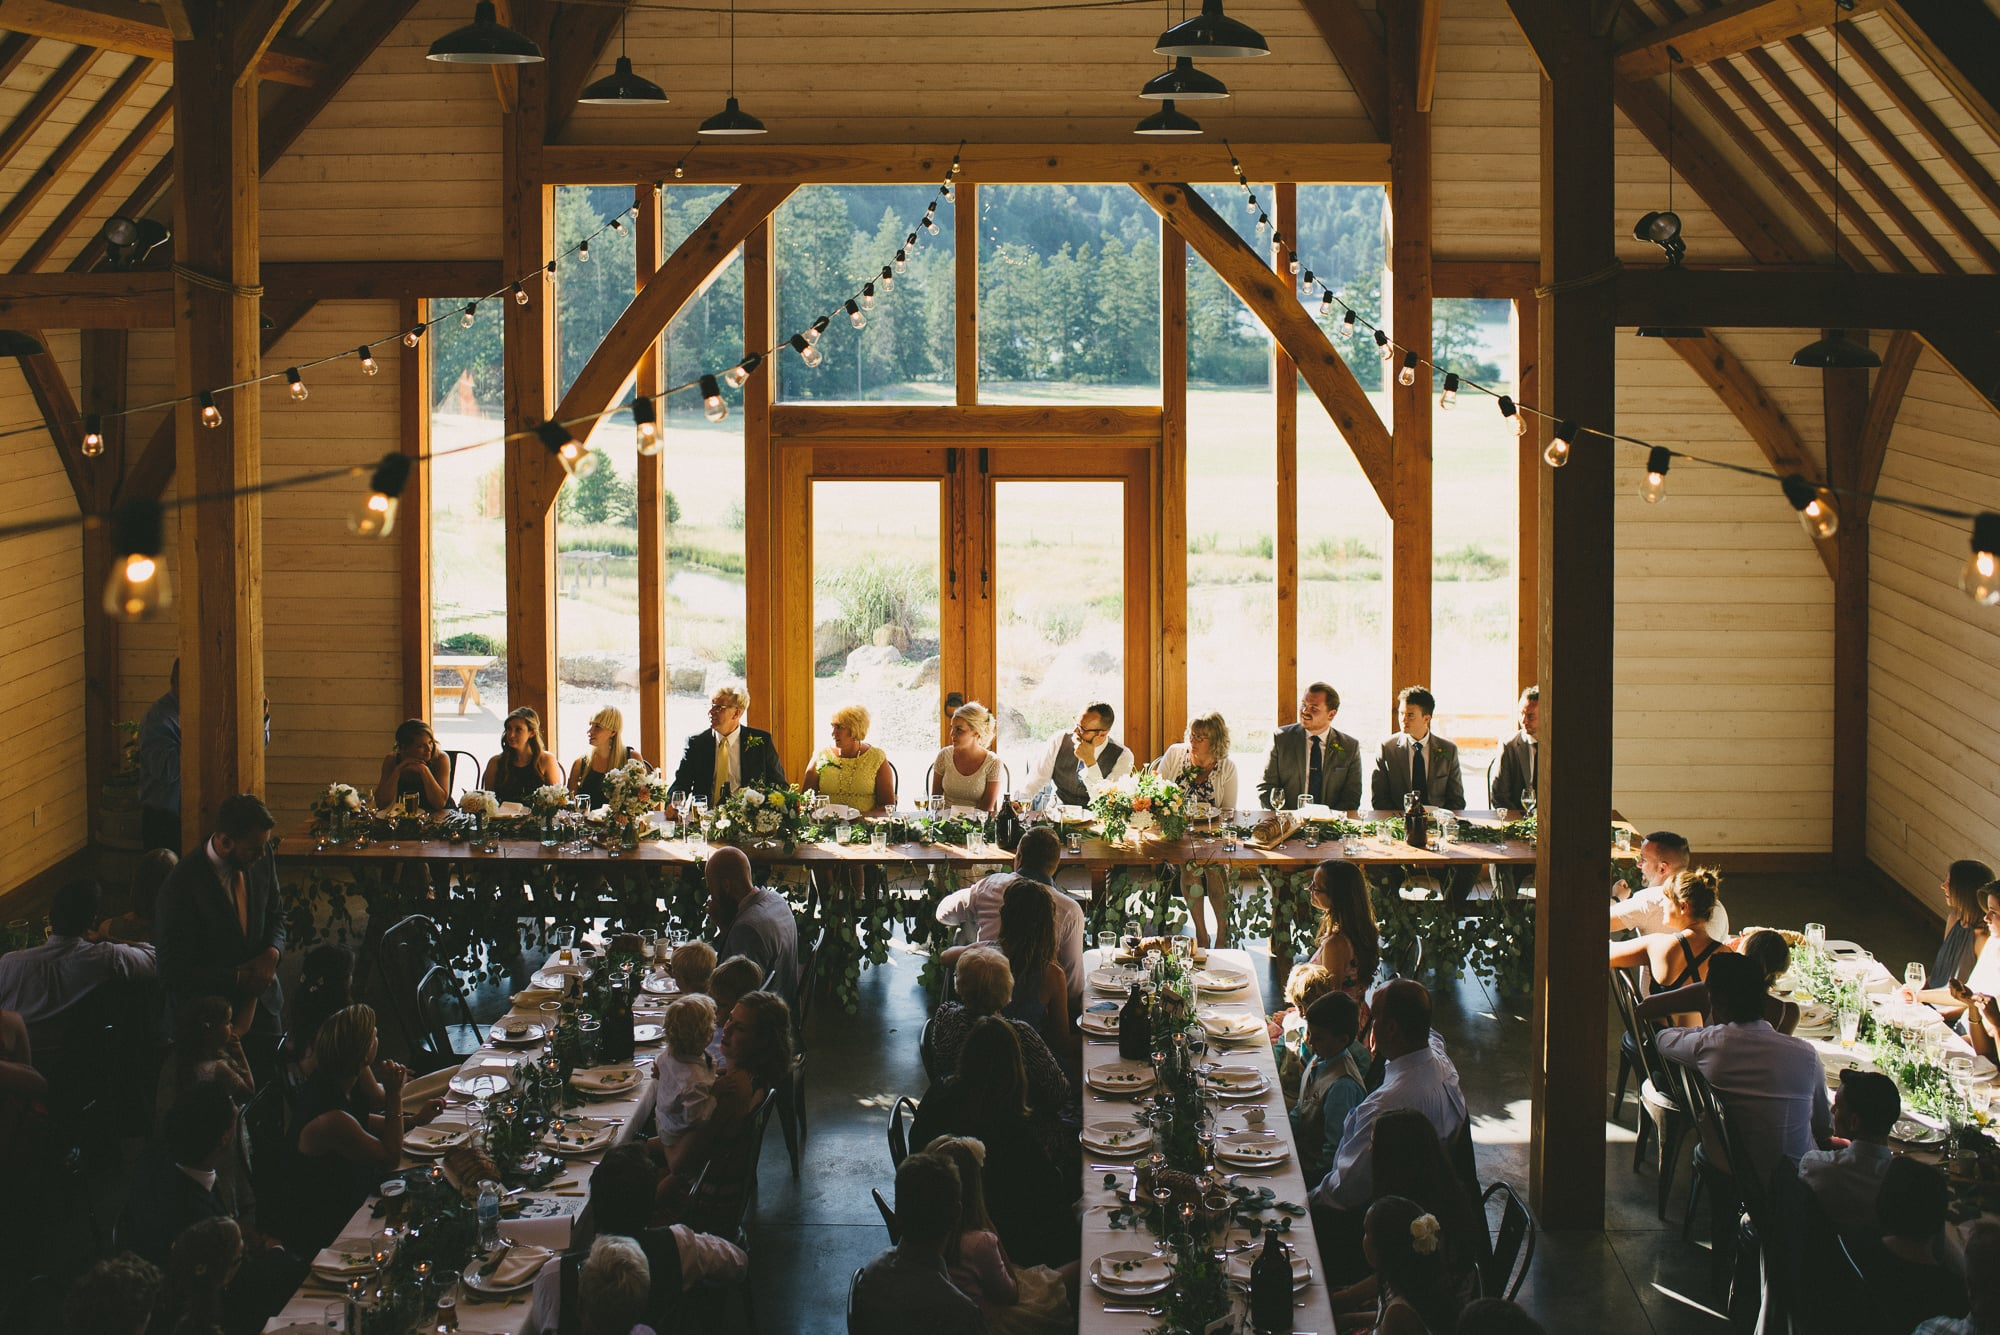 91-birdseye-cove-farm-wedding-sara-rogers-photography.jpg